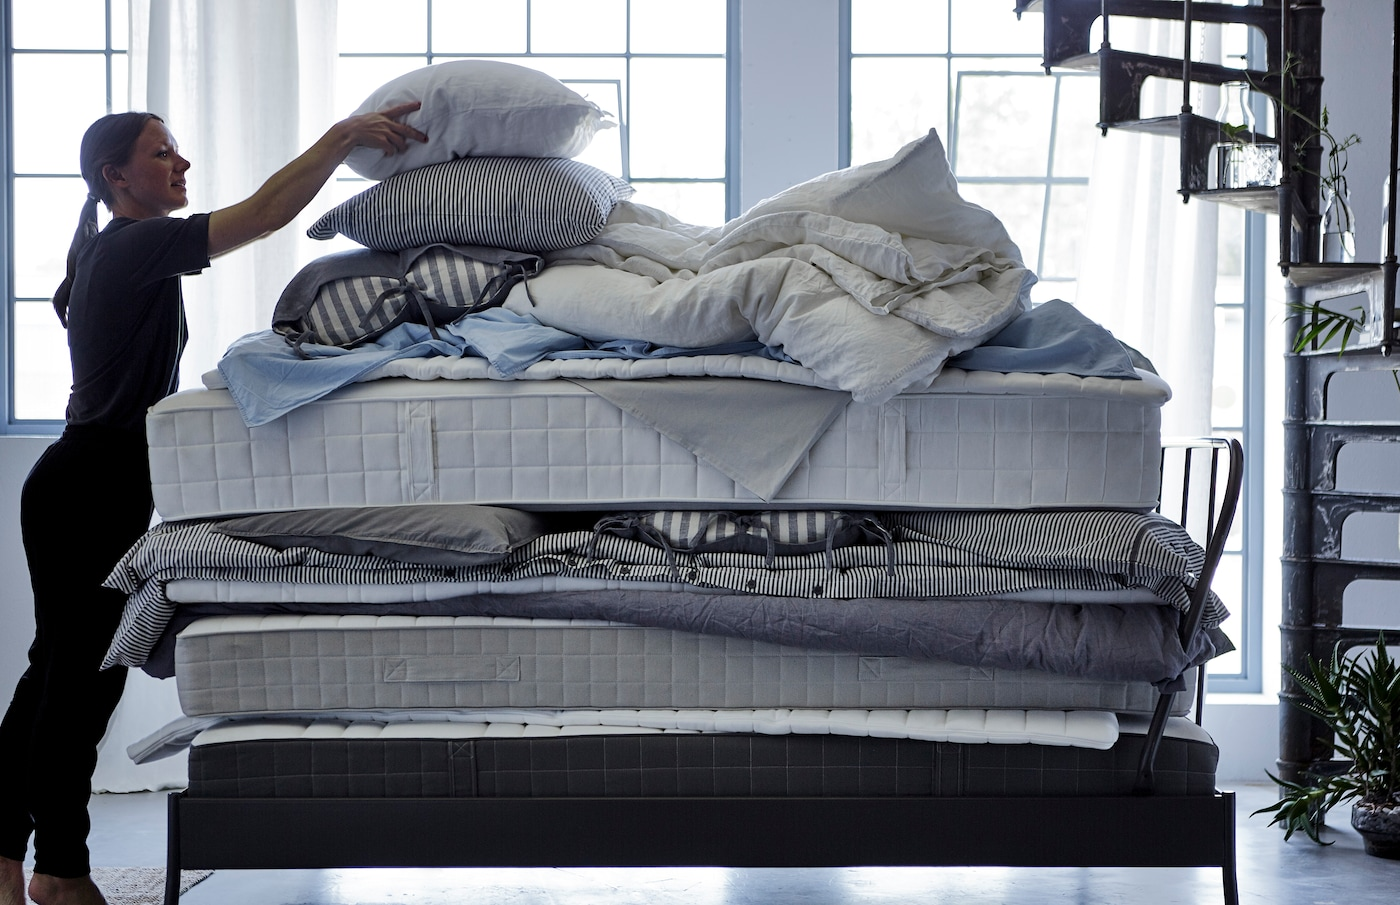 A woman putting a pillow on top of a stack of soft mattresses, quilts and bed textiles.